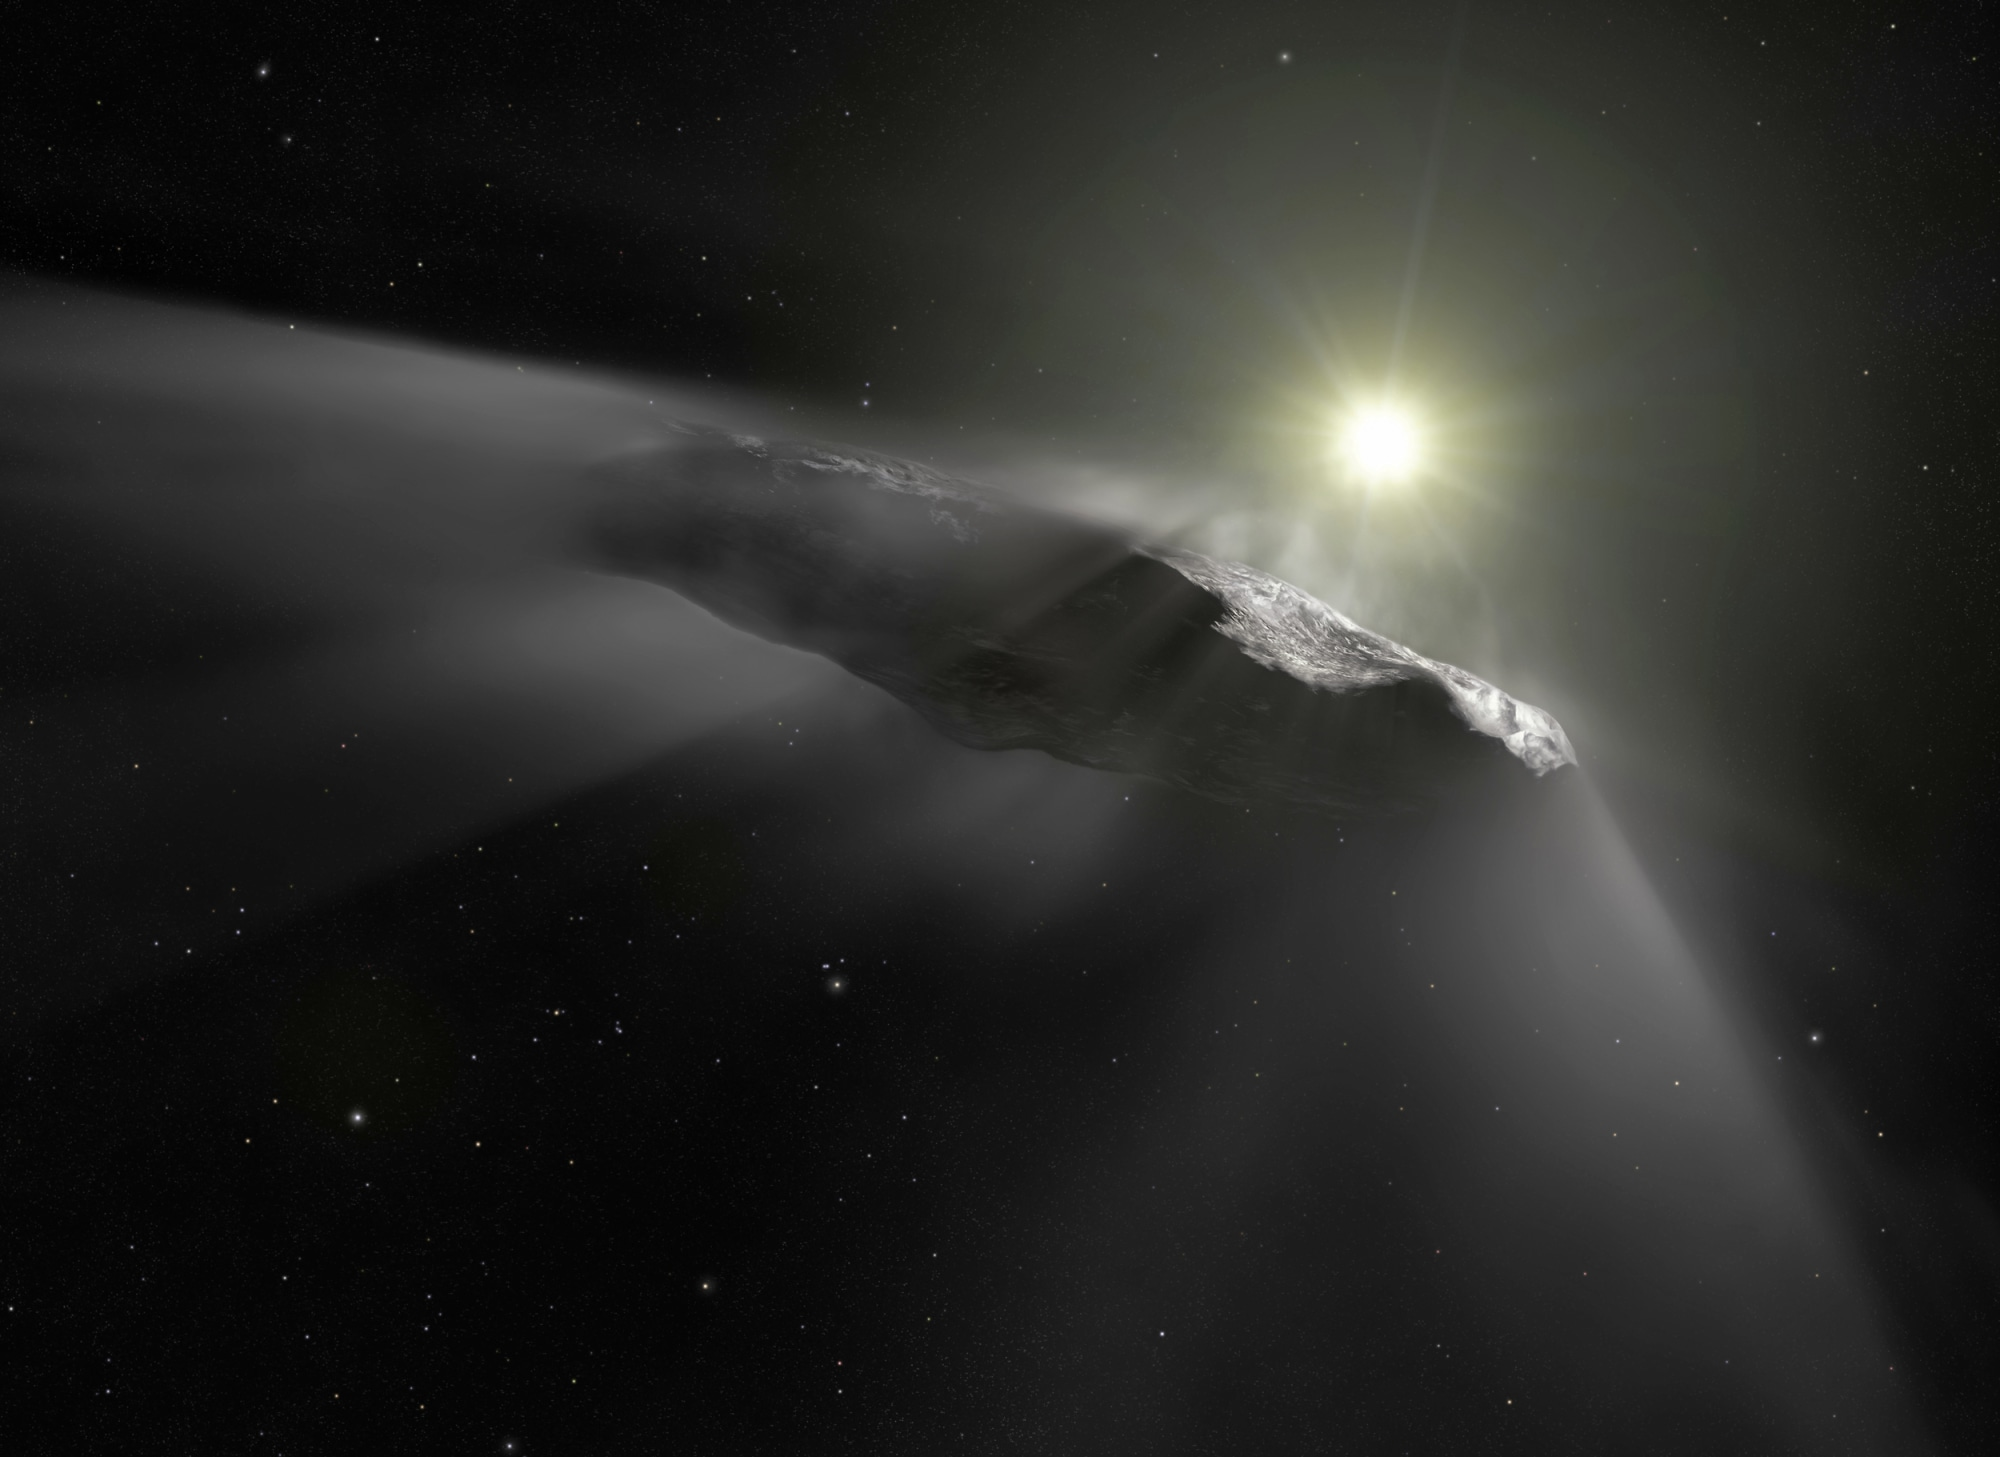 Image of interstellar object, Oumuamua